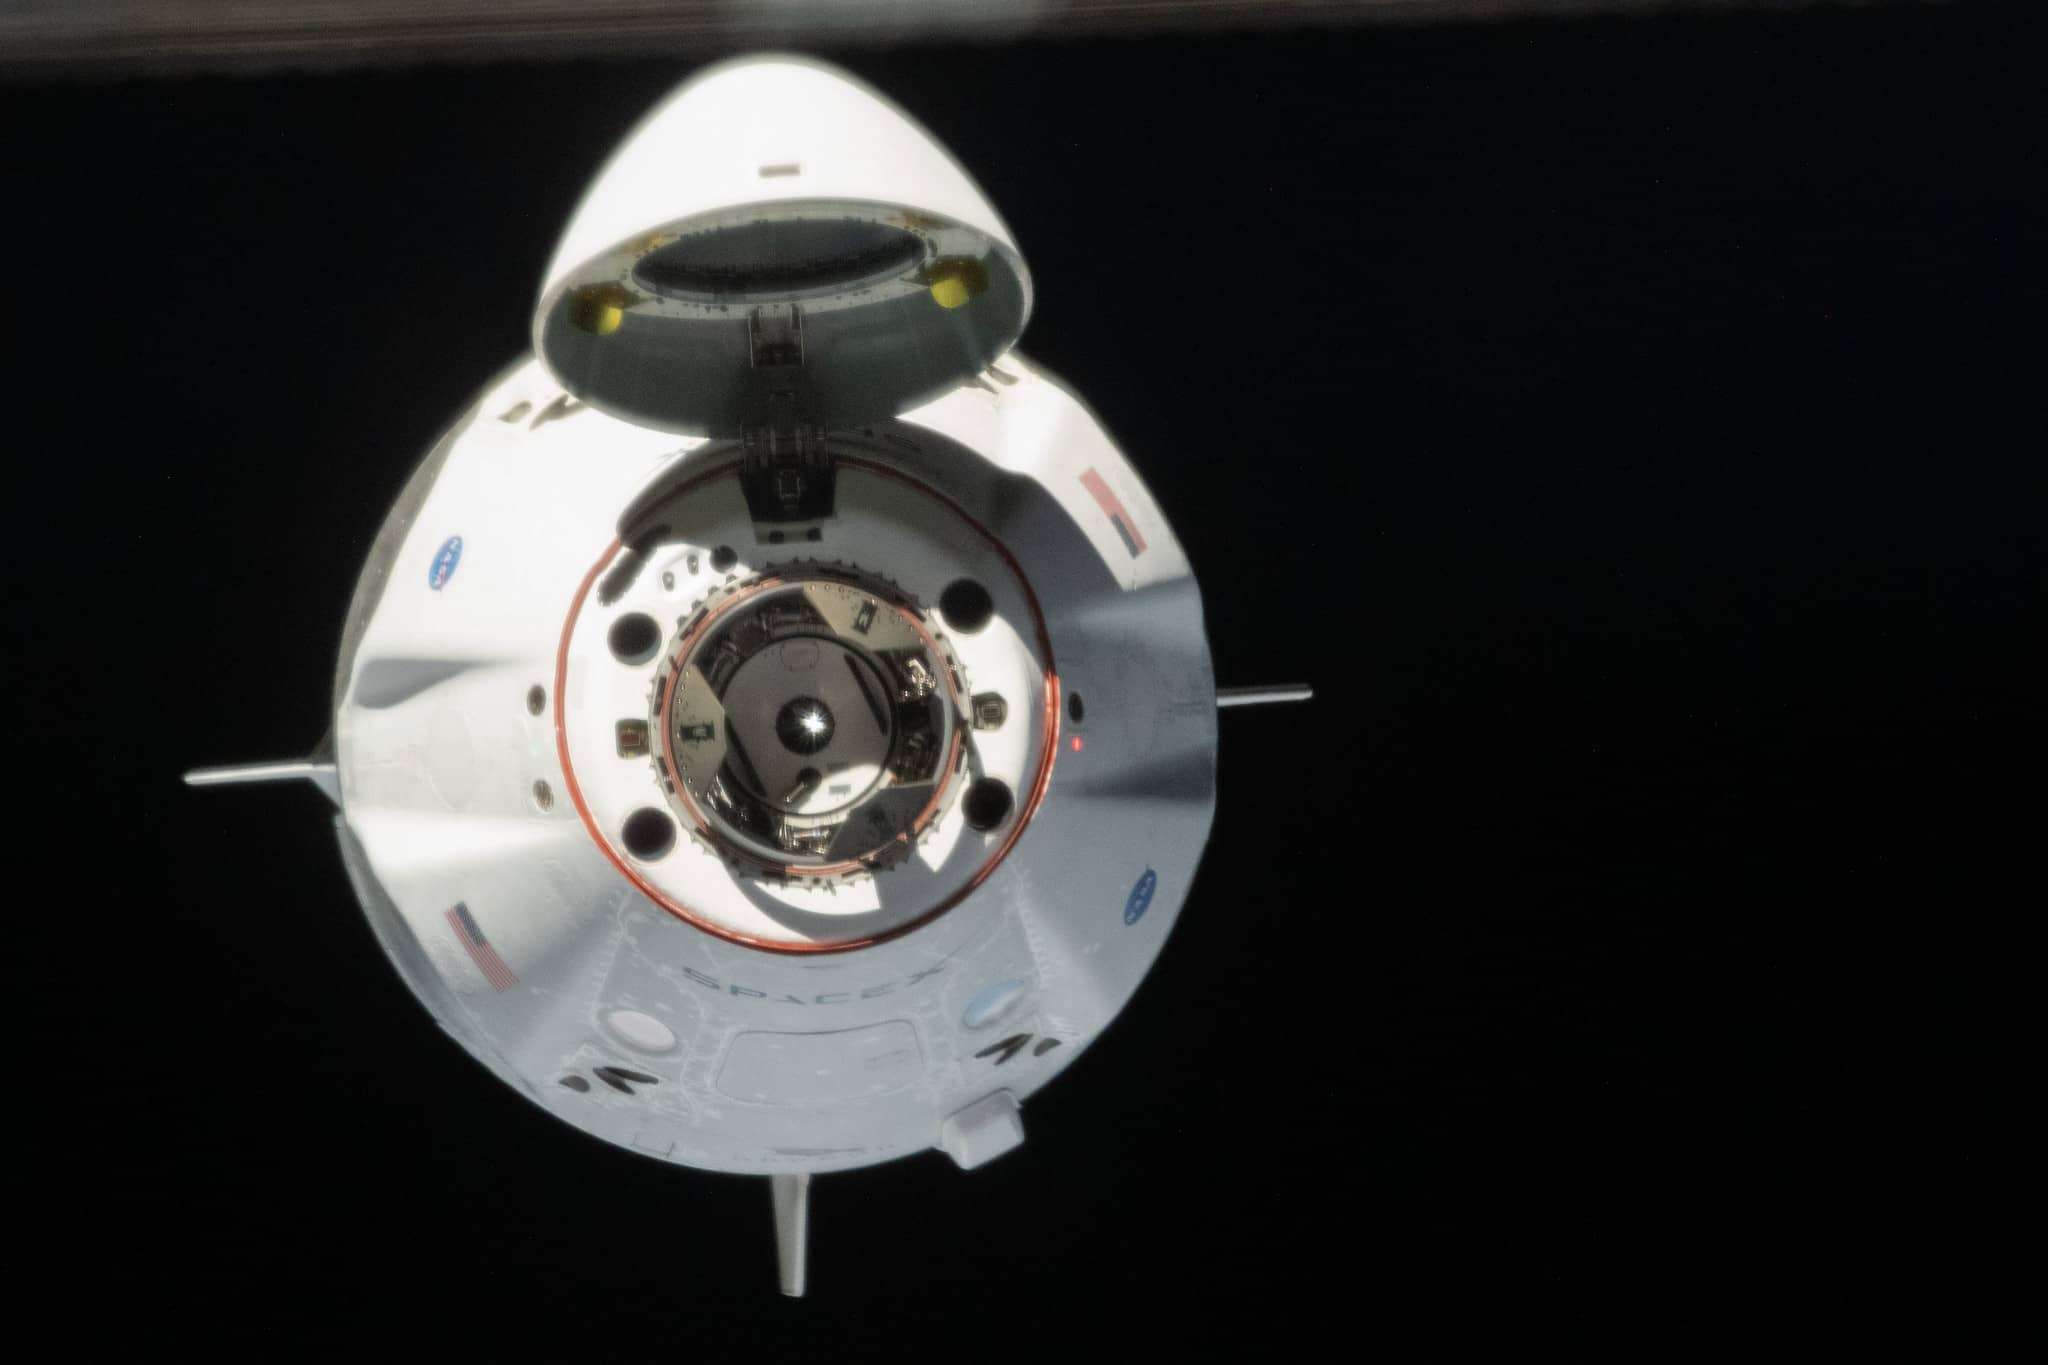 SpaceX Crew Dragon As It Approached the Space Station